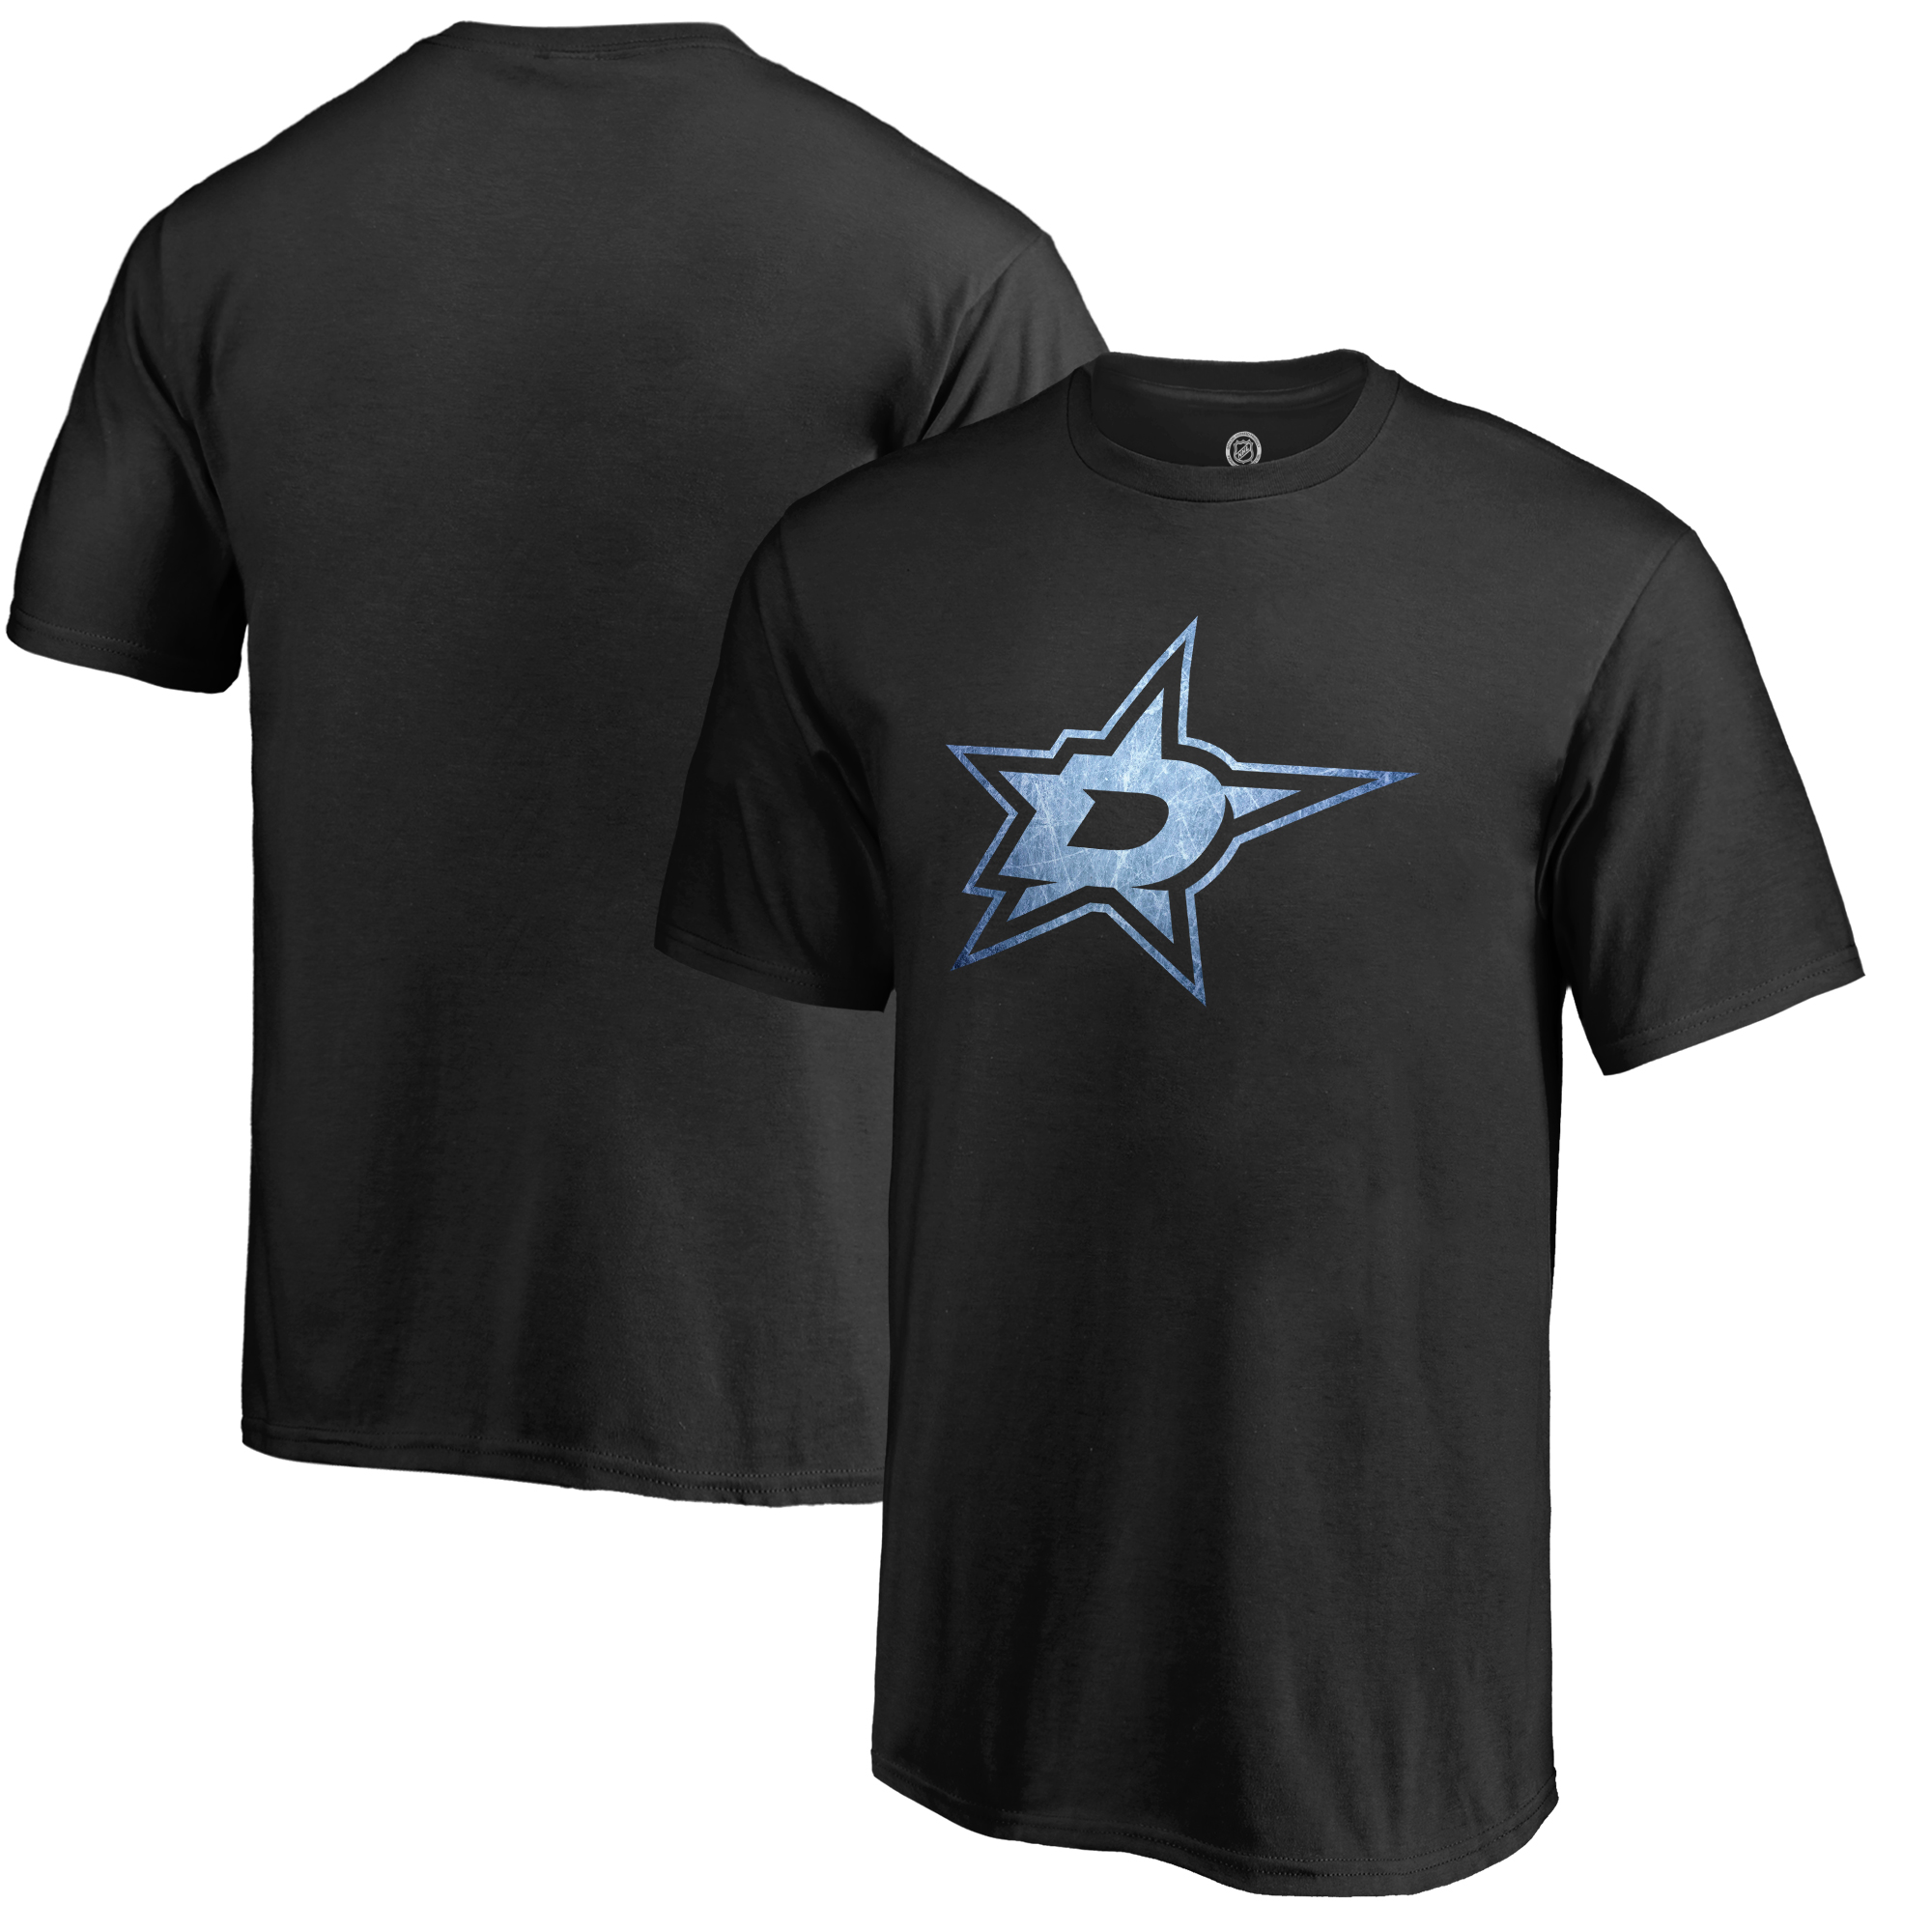 Dallas Stars Youth Pond Hockey T-Shirt Black by Football Fanatics/Ruppshirts